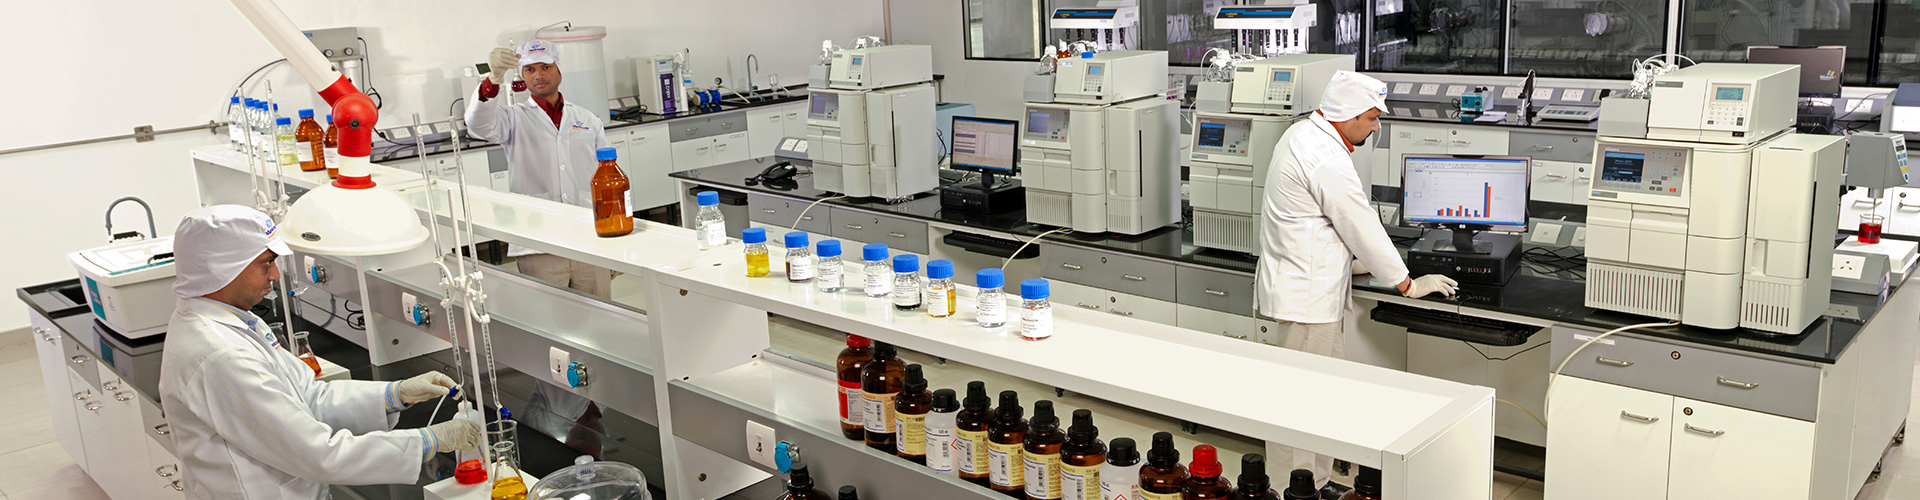 Leading Pharma Company in India - Research & Development Centre